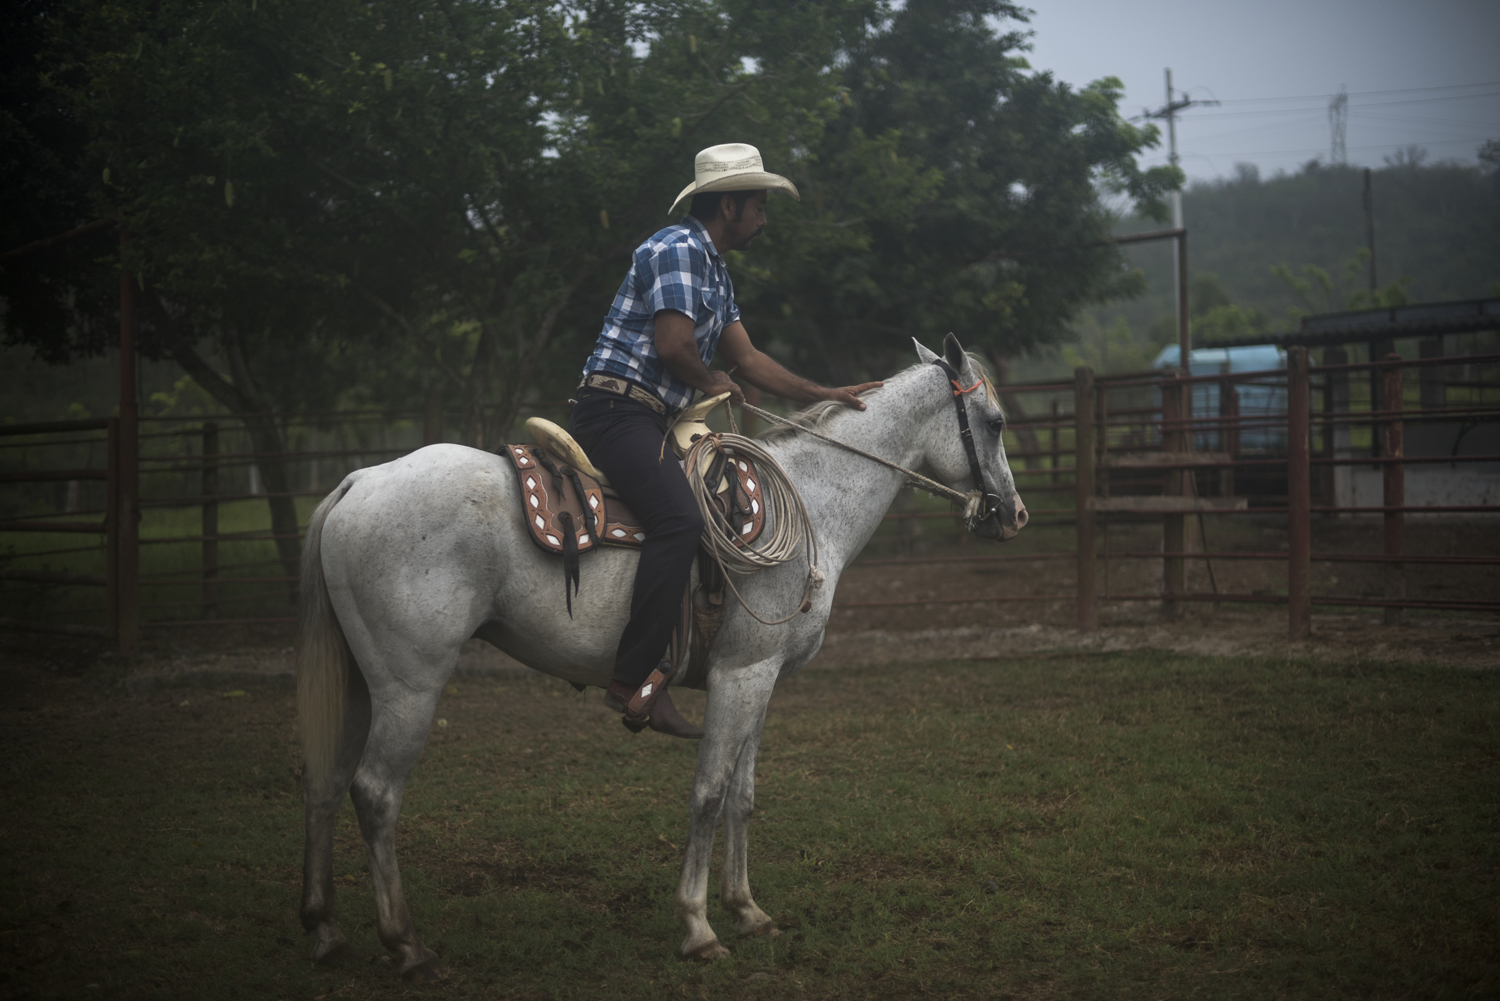 A farmer breaks a new horse on his farm on May 27, 2016 outside of Poza Rica, Veracruz.  The state's former governor, Javier Duarte, resigned his post in October 2016 and promptly disappeared after multiple corruption charges were leveled against him. He is widely believed to have strong links to Los Zetas.